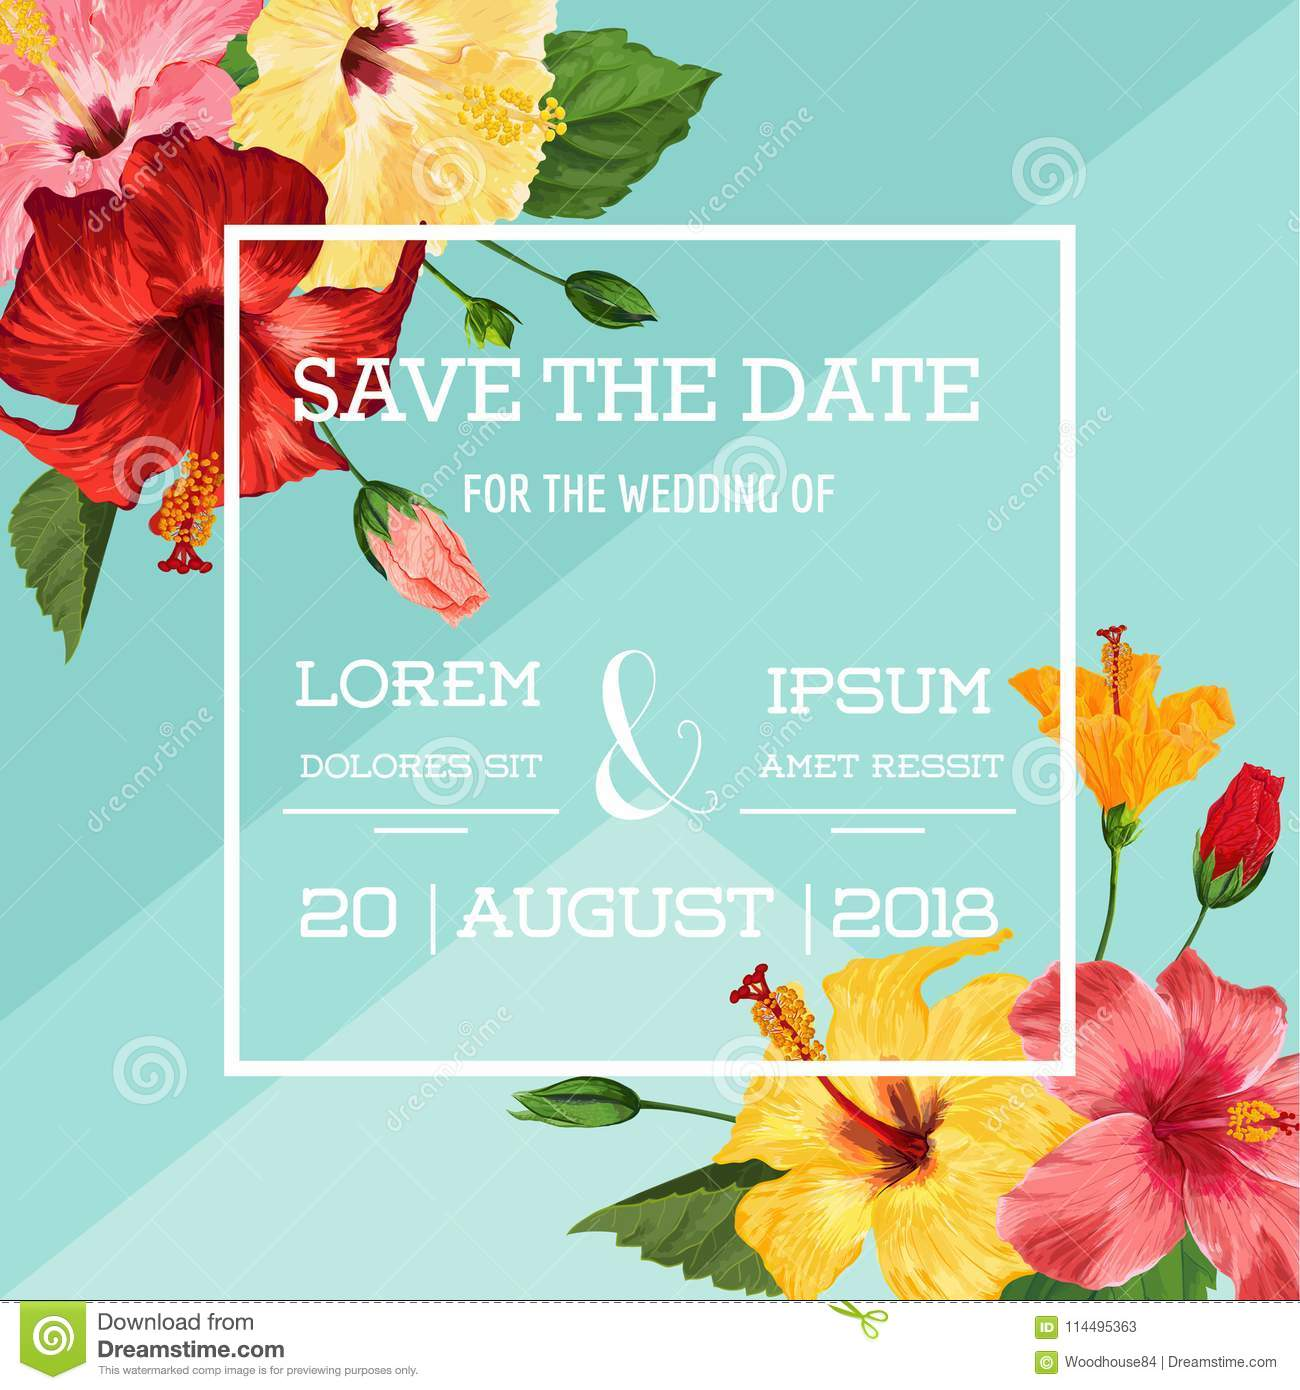 Wedding invitation template with red hibiscus flowers save the date download wedding invitation template with red hibiscus flowers save the date floral card for greetings m4hsunfo